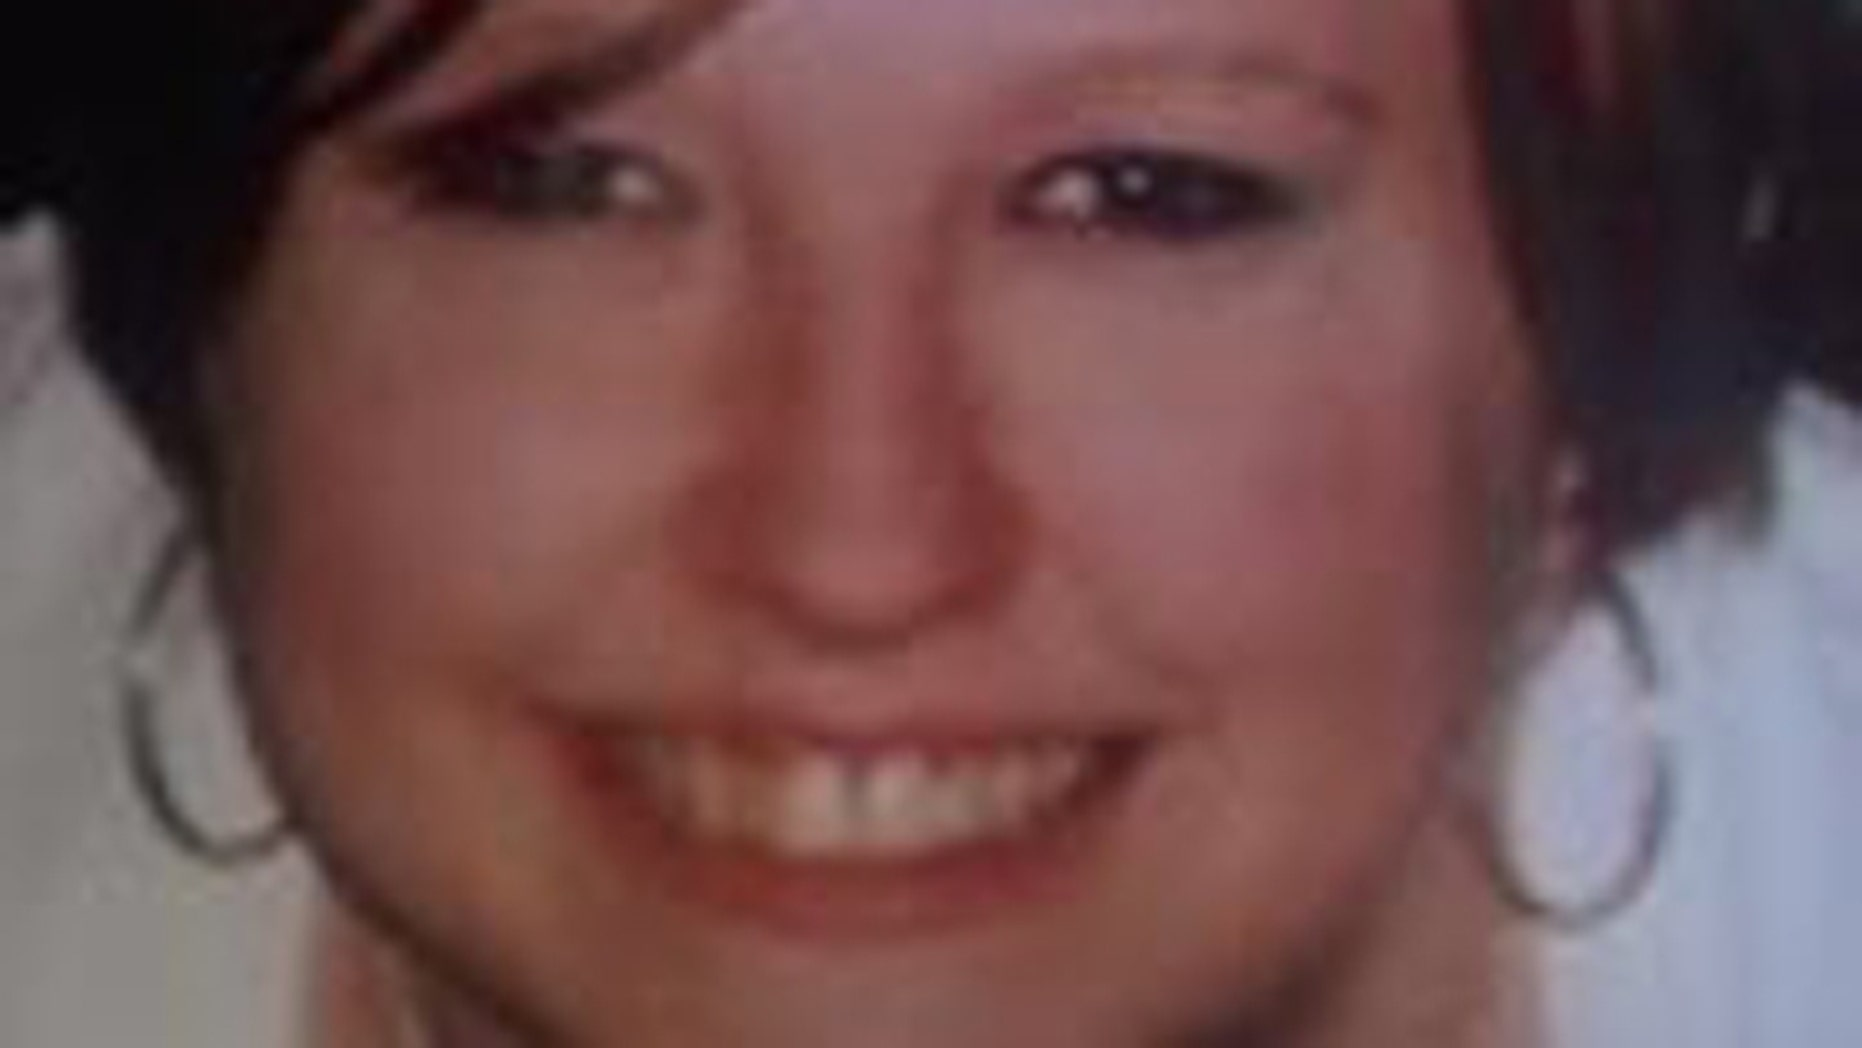 The body of 26-year-old Jessica Eberhardt was reportedly found Tuesday inside a vehicle at an urgent care center in Arnold, Mo. (Fox2Now.com).